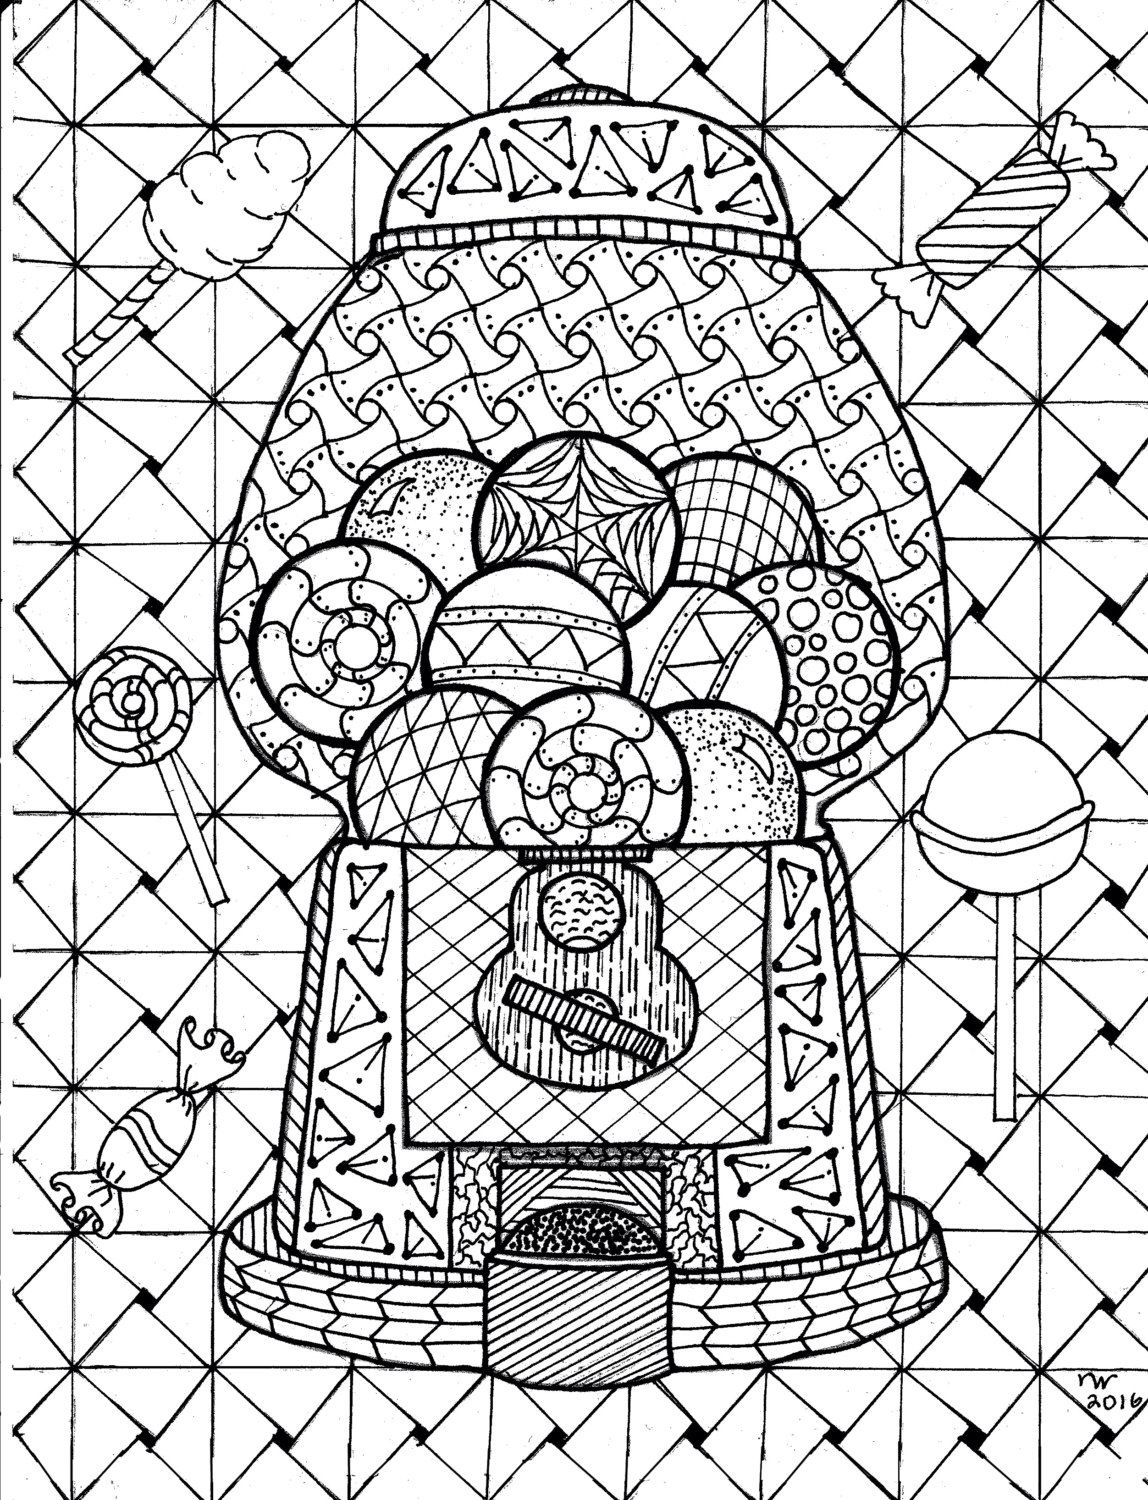 gumball machine zentangle coloring page by inspirationbyvicki on zentangle coloring pages pdf zentangle coloring pages pinterest